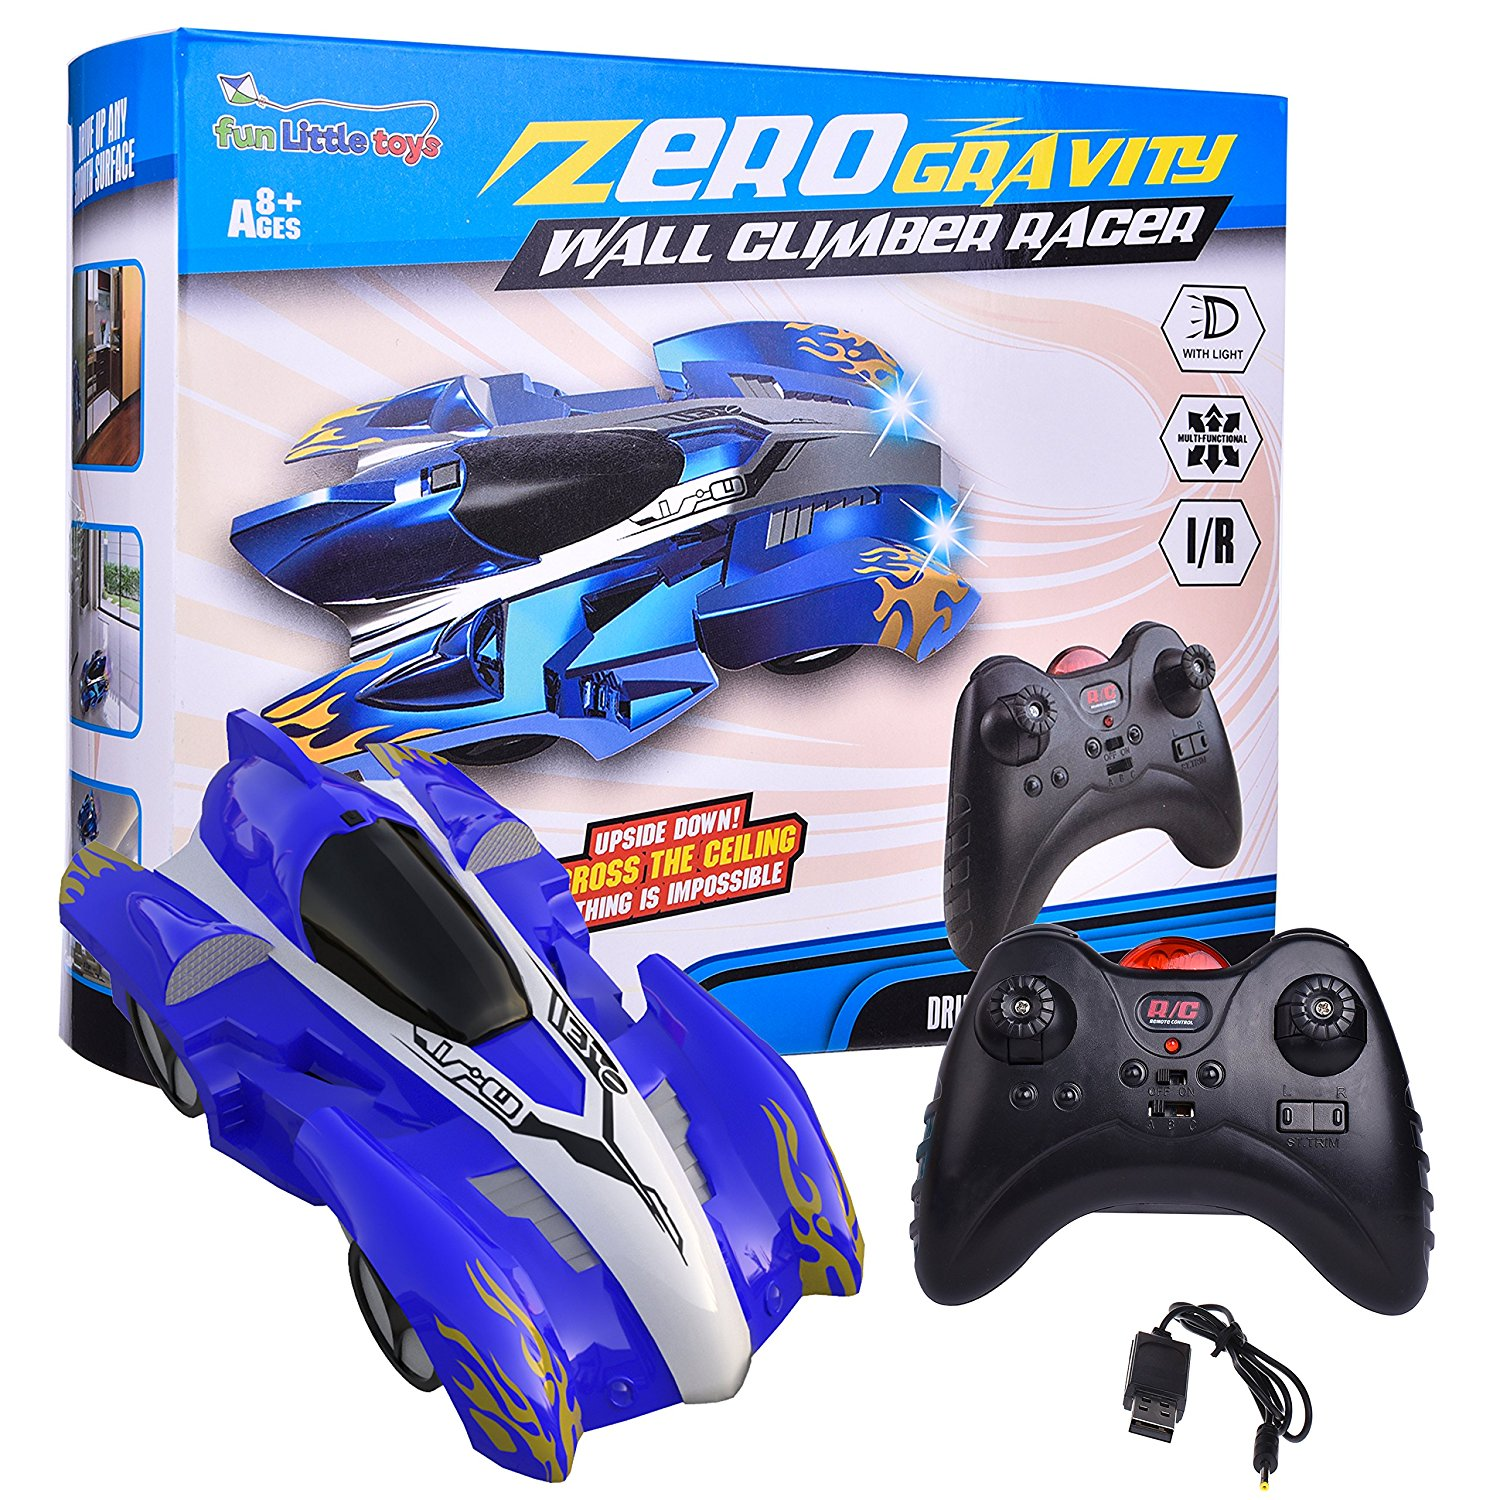 Wall Climbing Zero Gravity Remote Control Racer Vehicle Drive Up Any Smooth Surface, Boy's Birthday Party Gift Electrical RC Driving Car Instruction Guide F-86